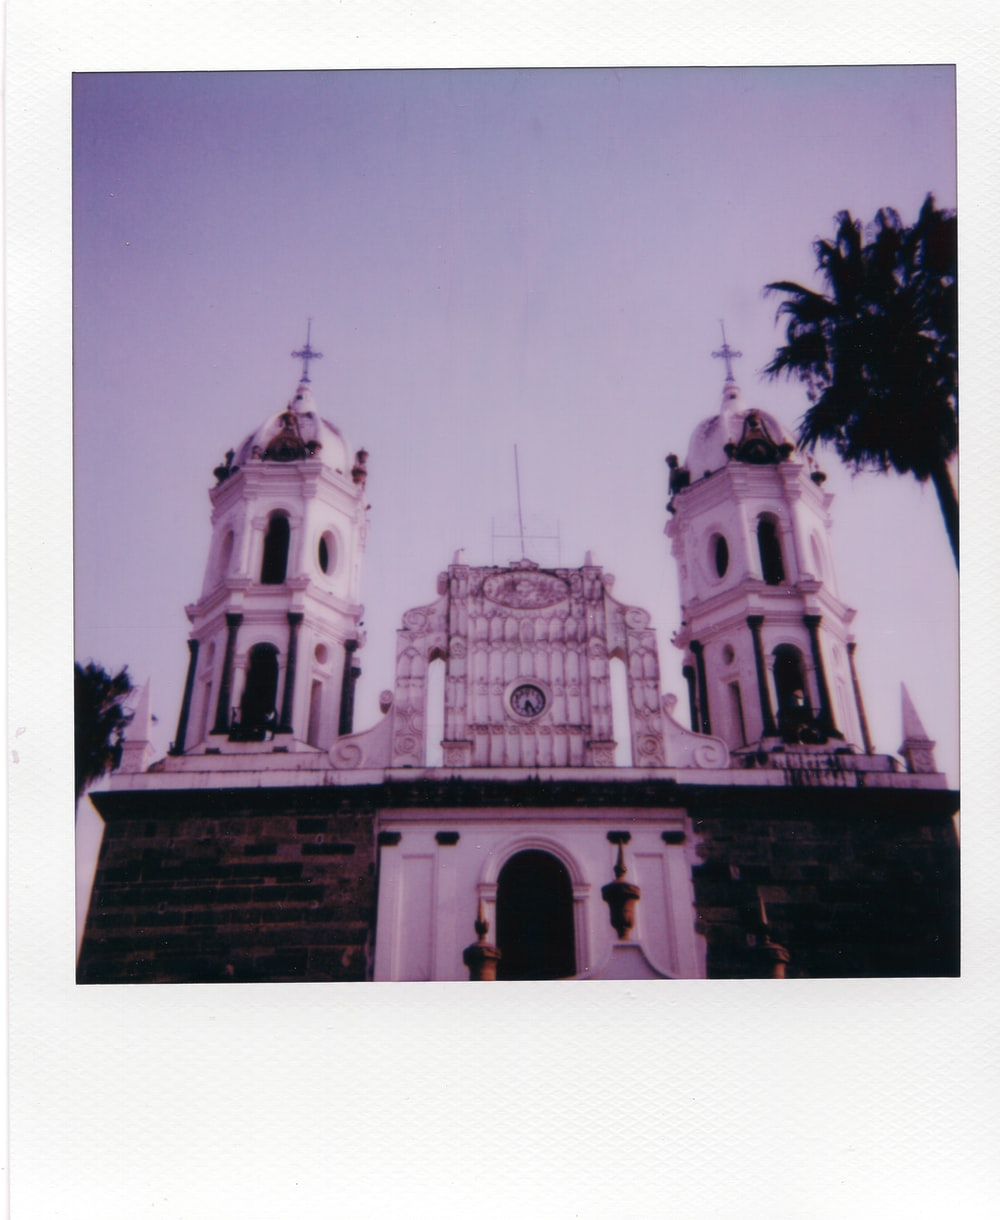 grayscale photo of cathedral near palm trees